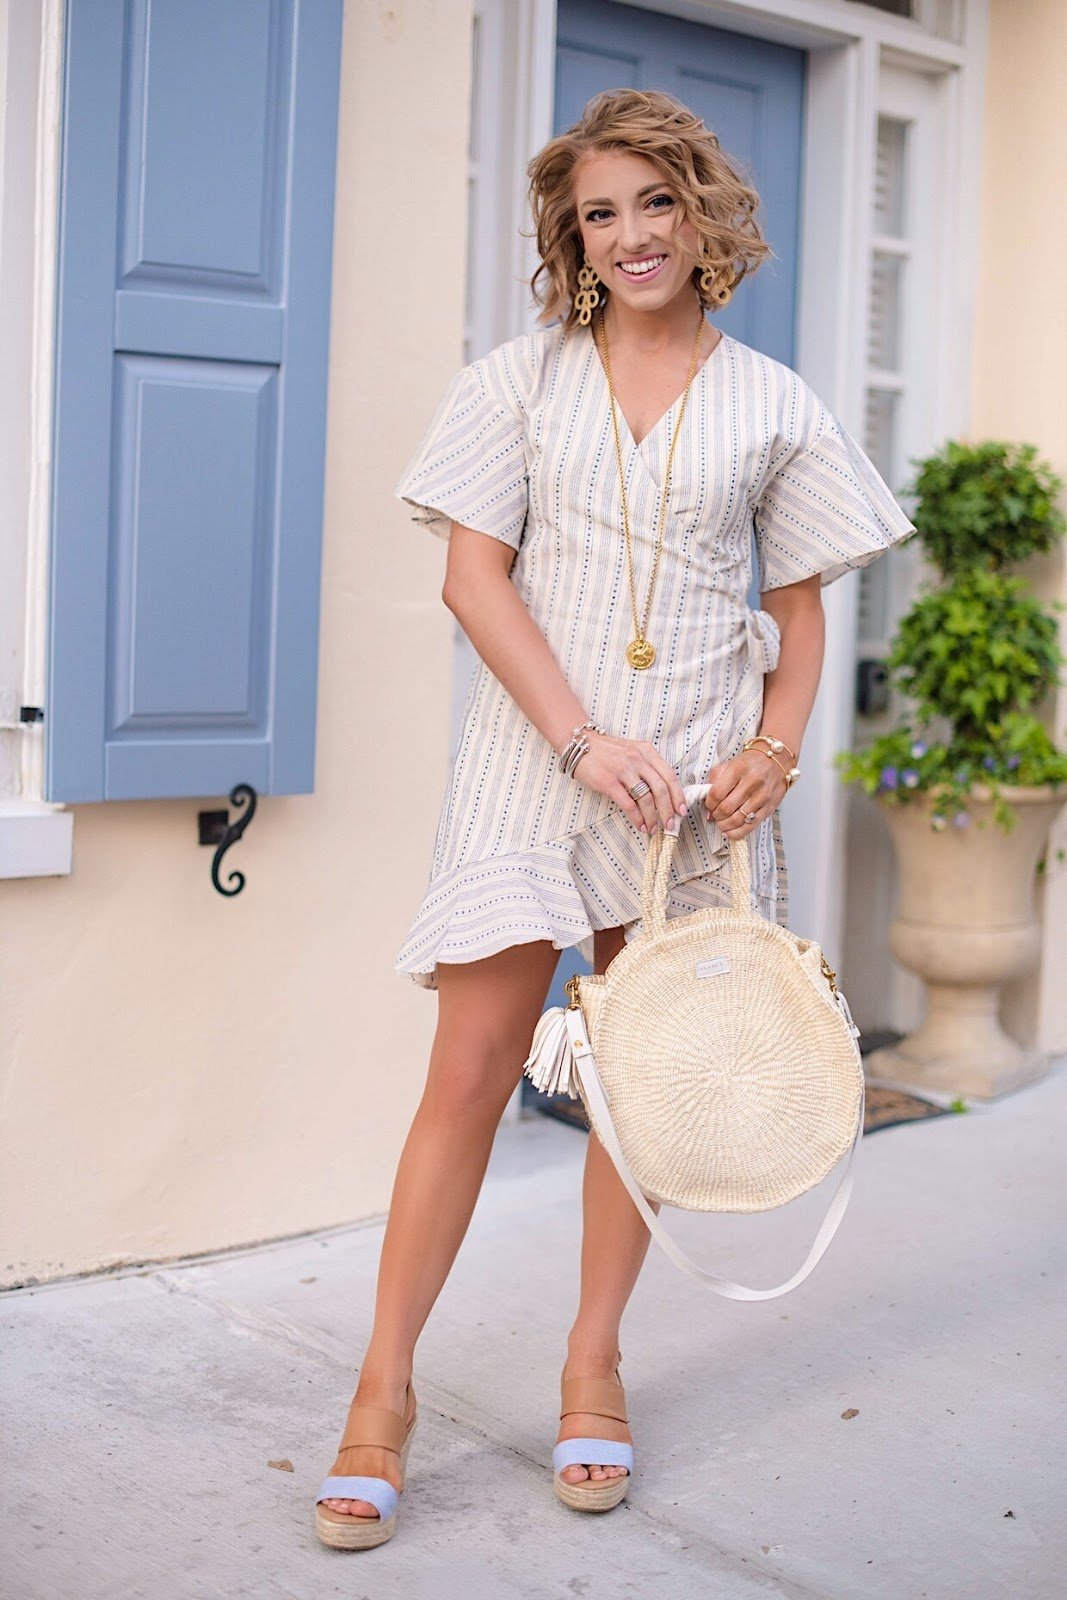 Ivory & Blue Wrap Dress in Charleston, SC. - Something Delightful Blog